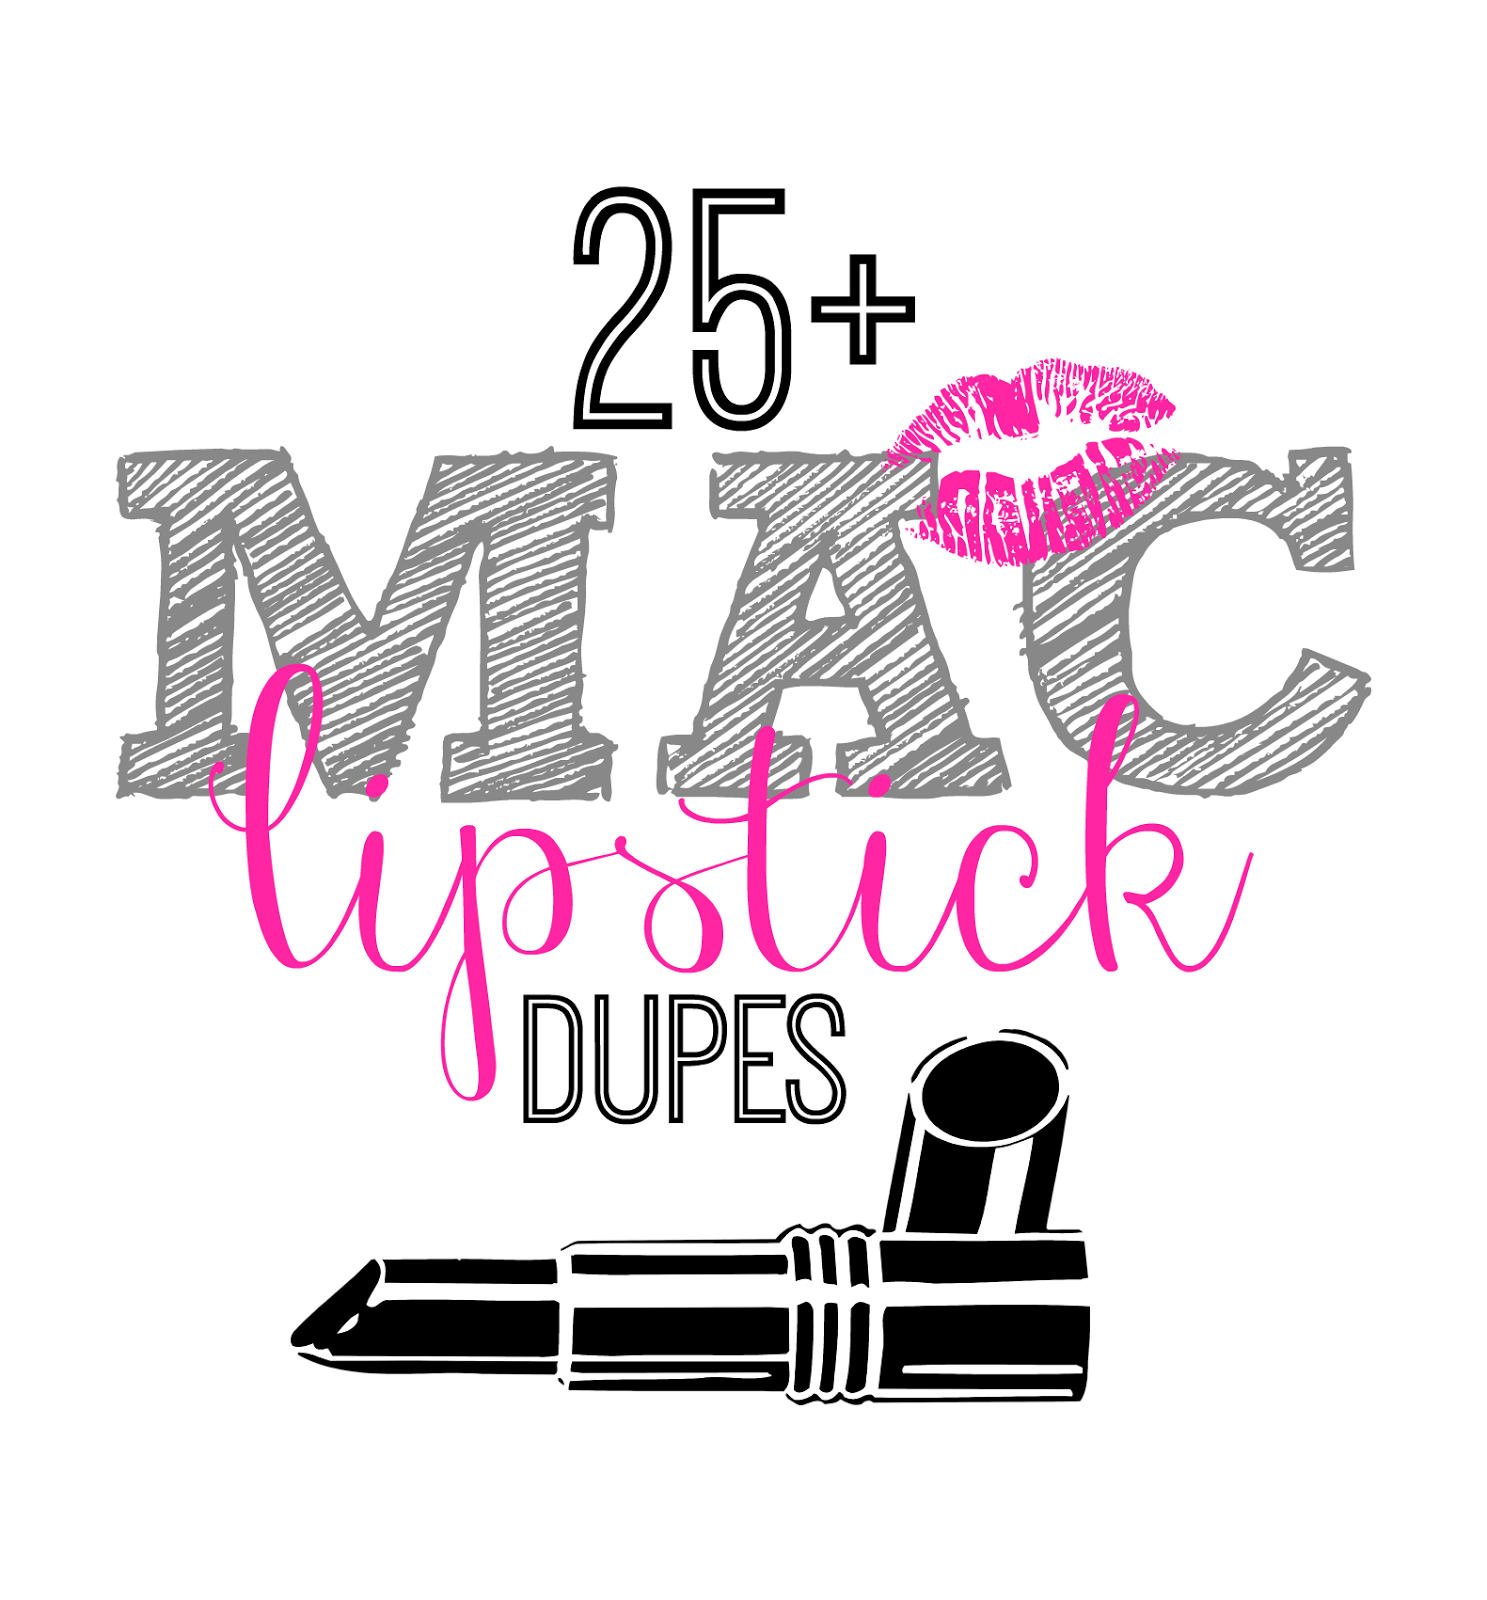 25+ MAC Lipstick Drugstore Dupes | This Girl's Life Blog